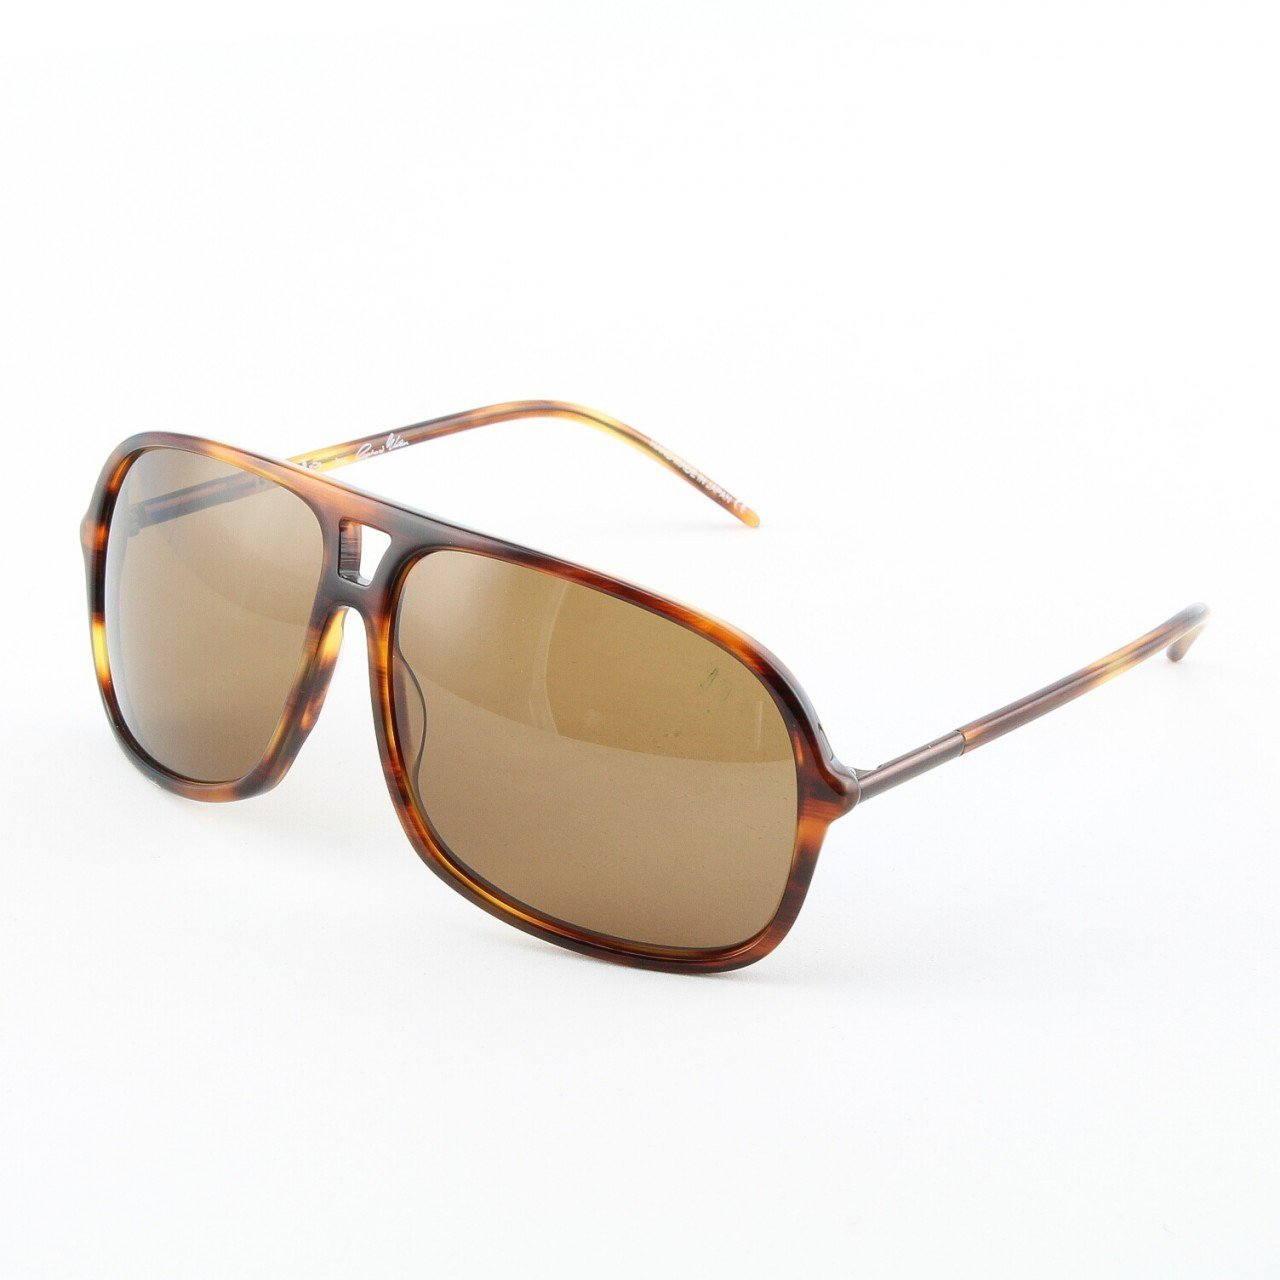 Blinde Lights Out Unisex Sunglasses Col. Brown Tortoise with Solid Brown Lenses